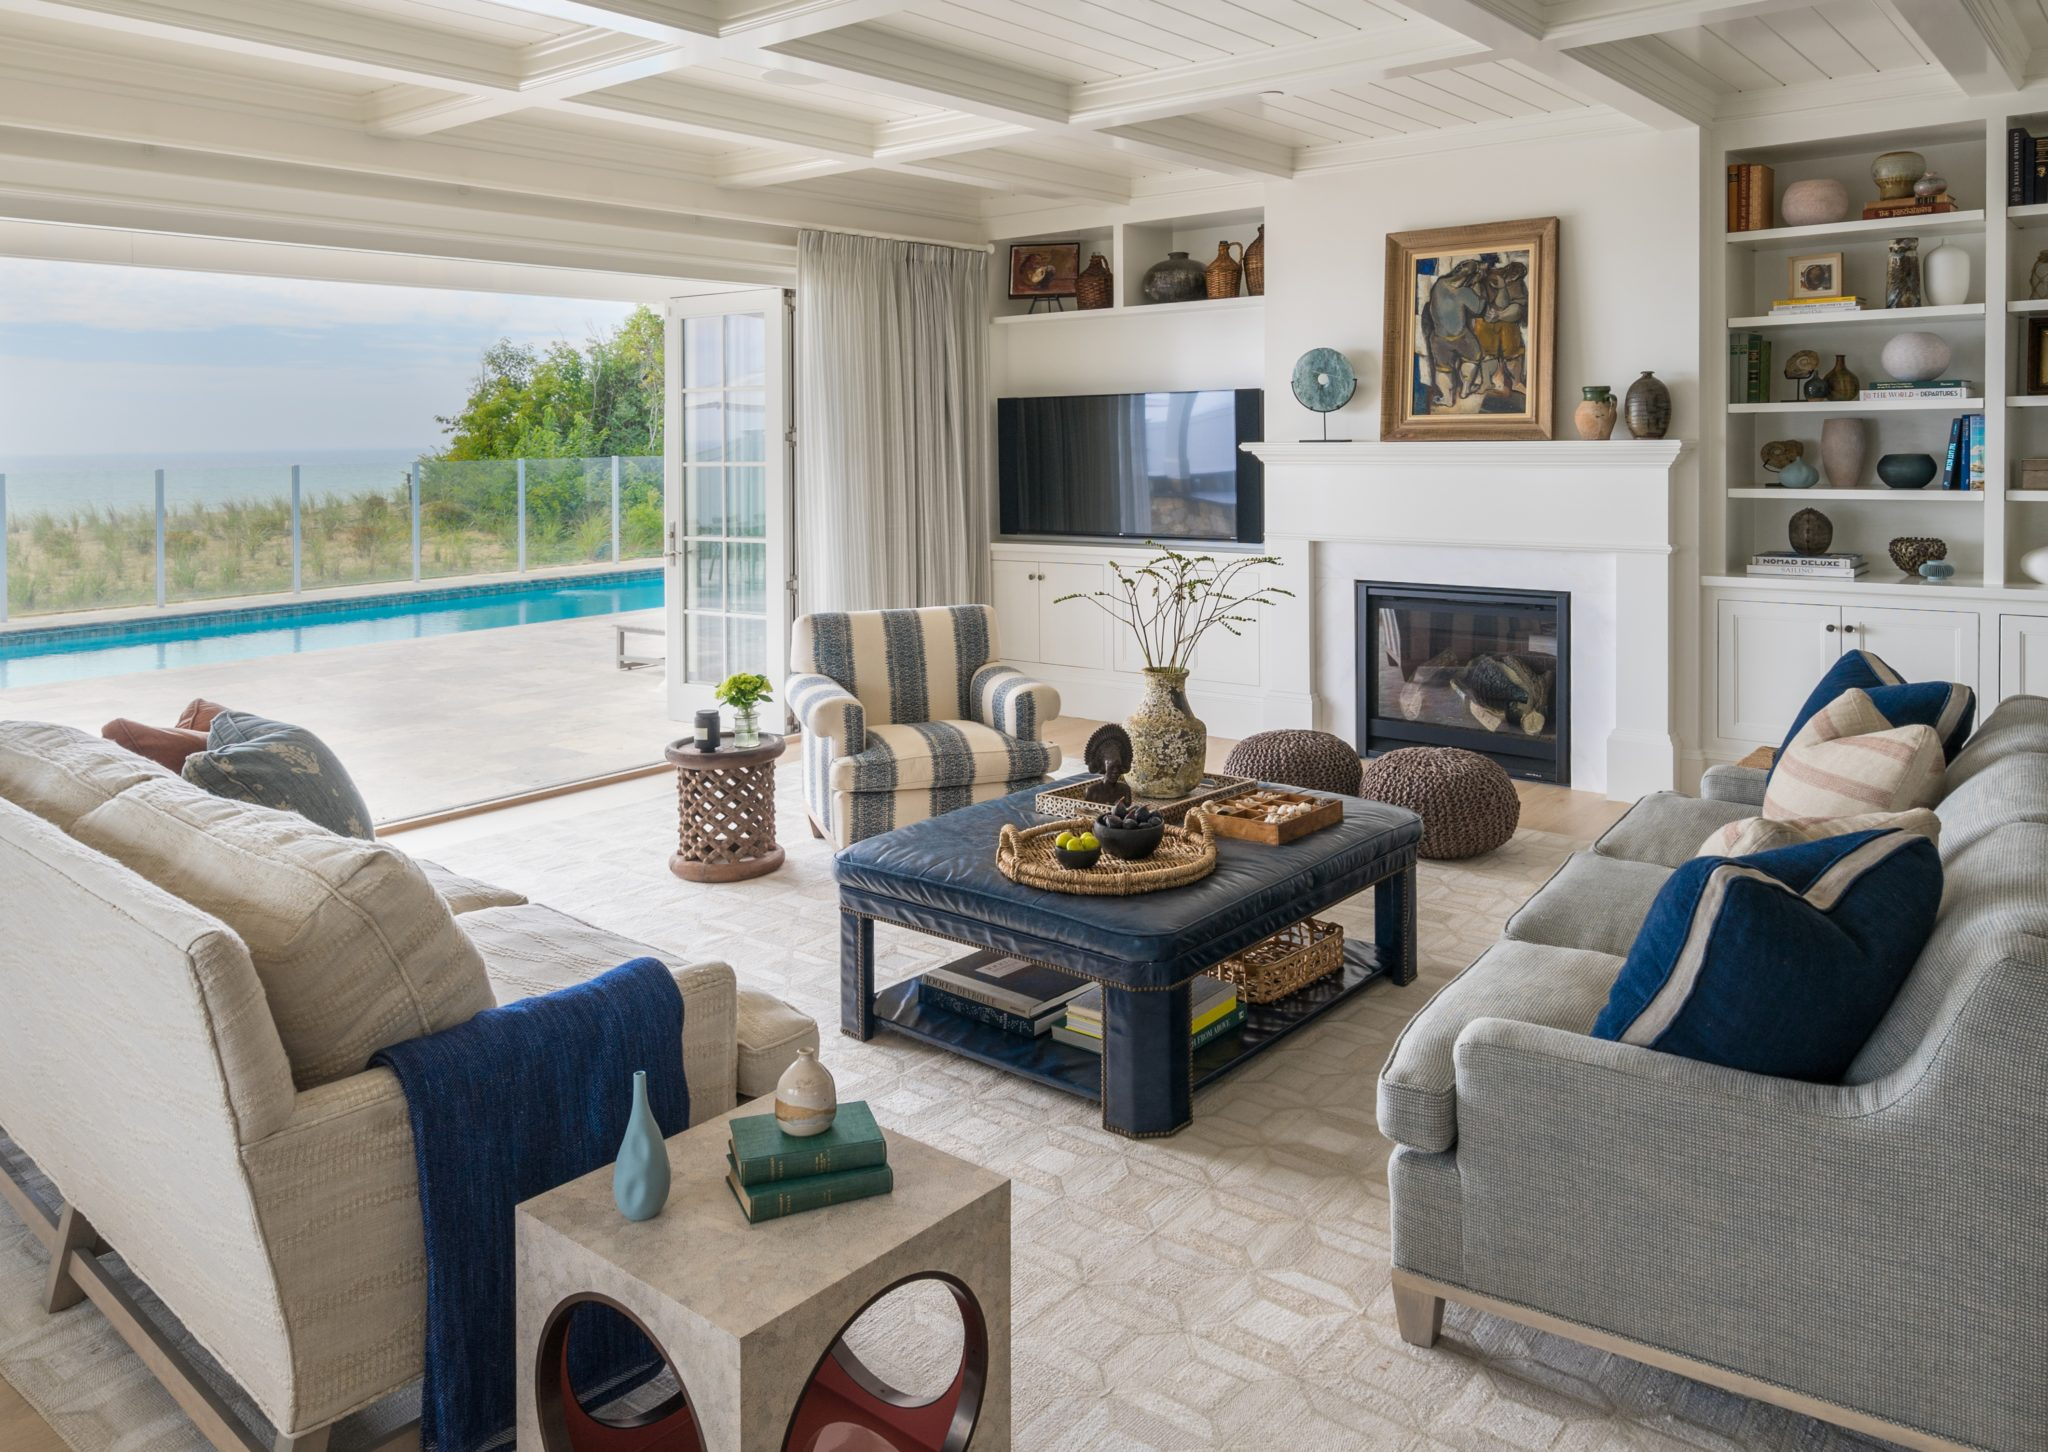 Indoor outdoor living on Cape Cod by Nina Farmer Interiors